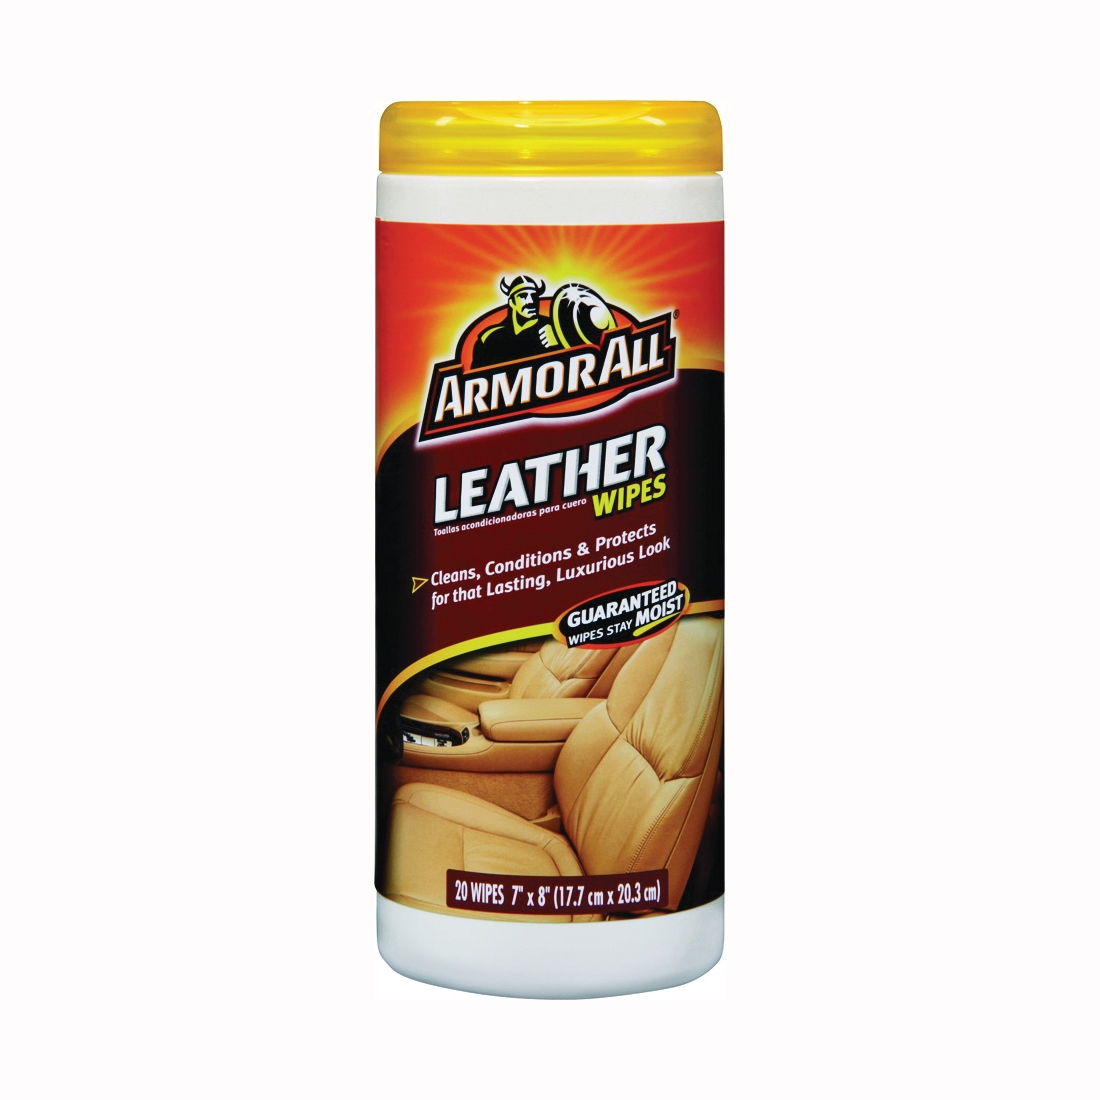 Picture of ARMOR ALL 10881-4 Leather Wipes, 20